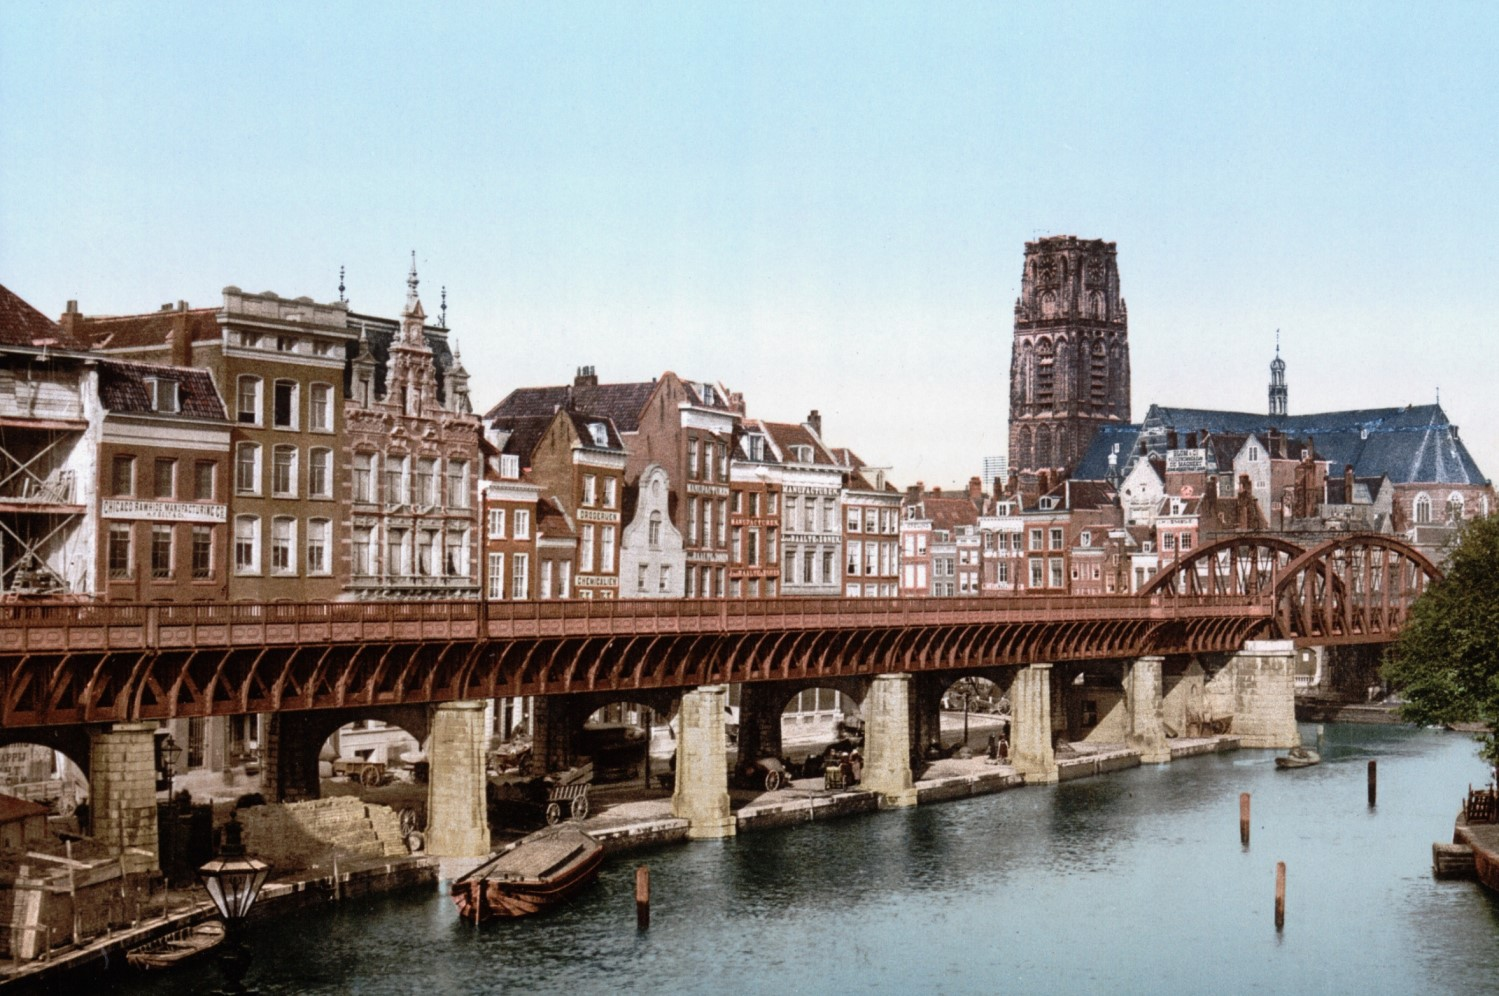 What Rotterdam Looked Like Before the Bombing